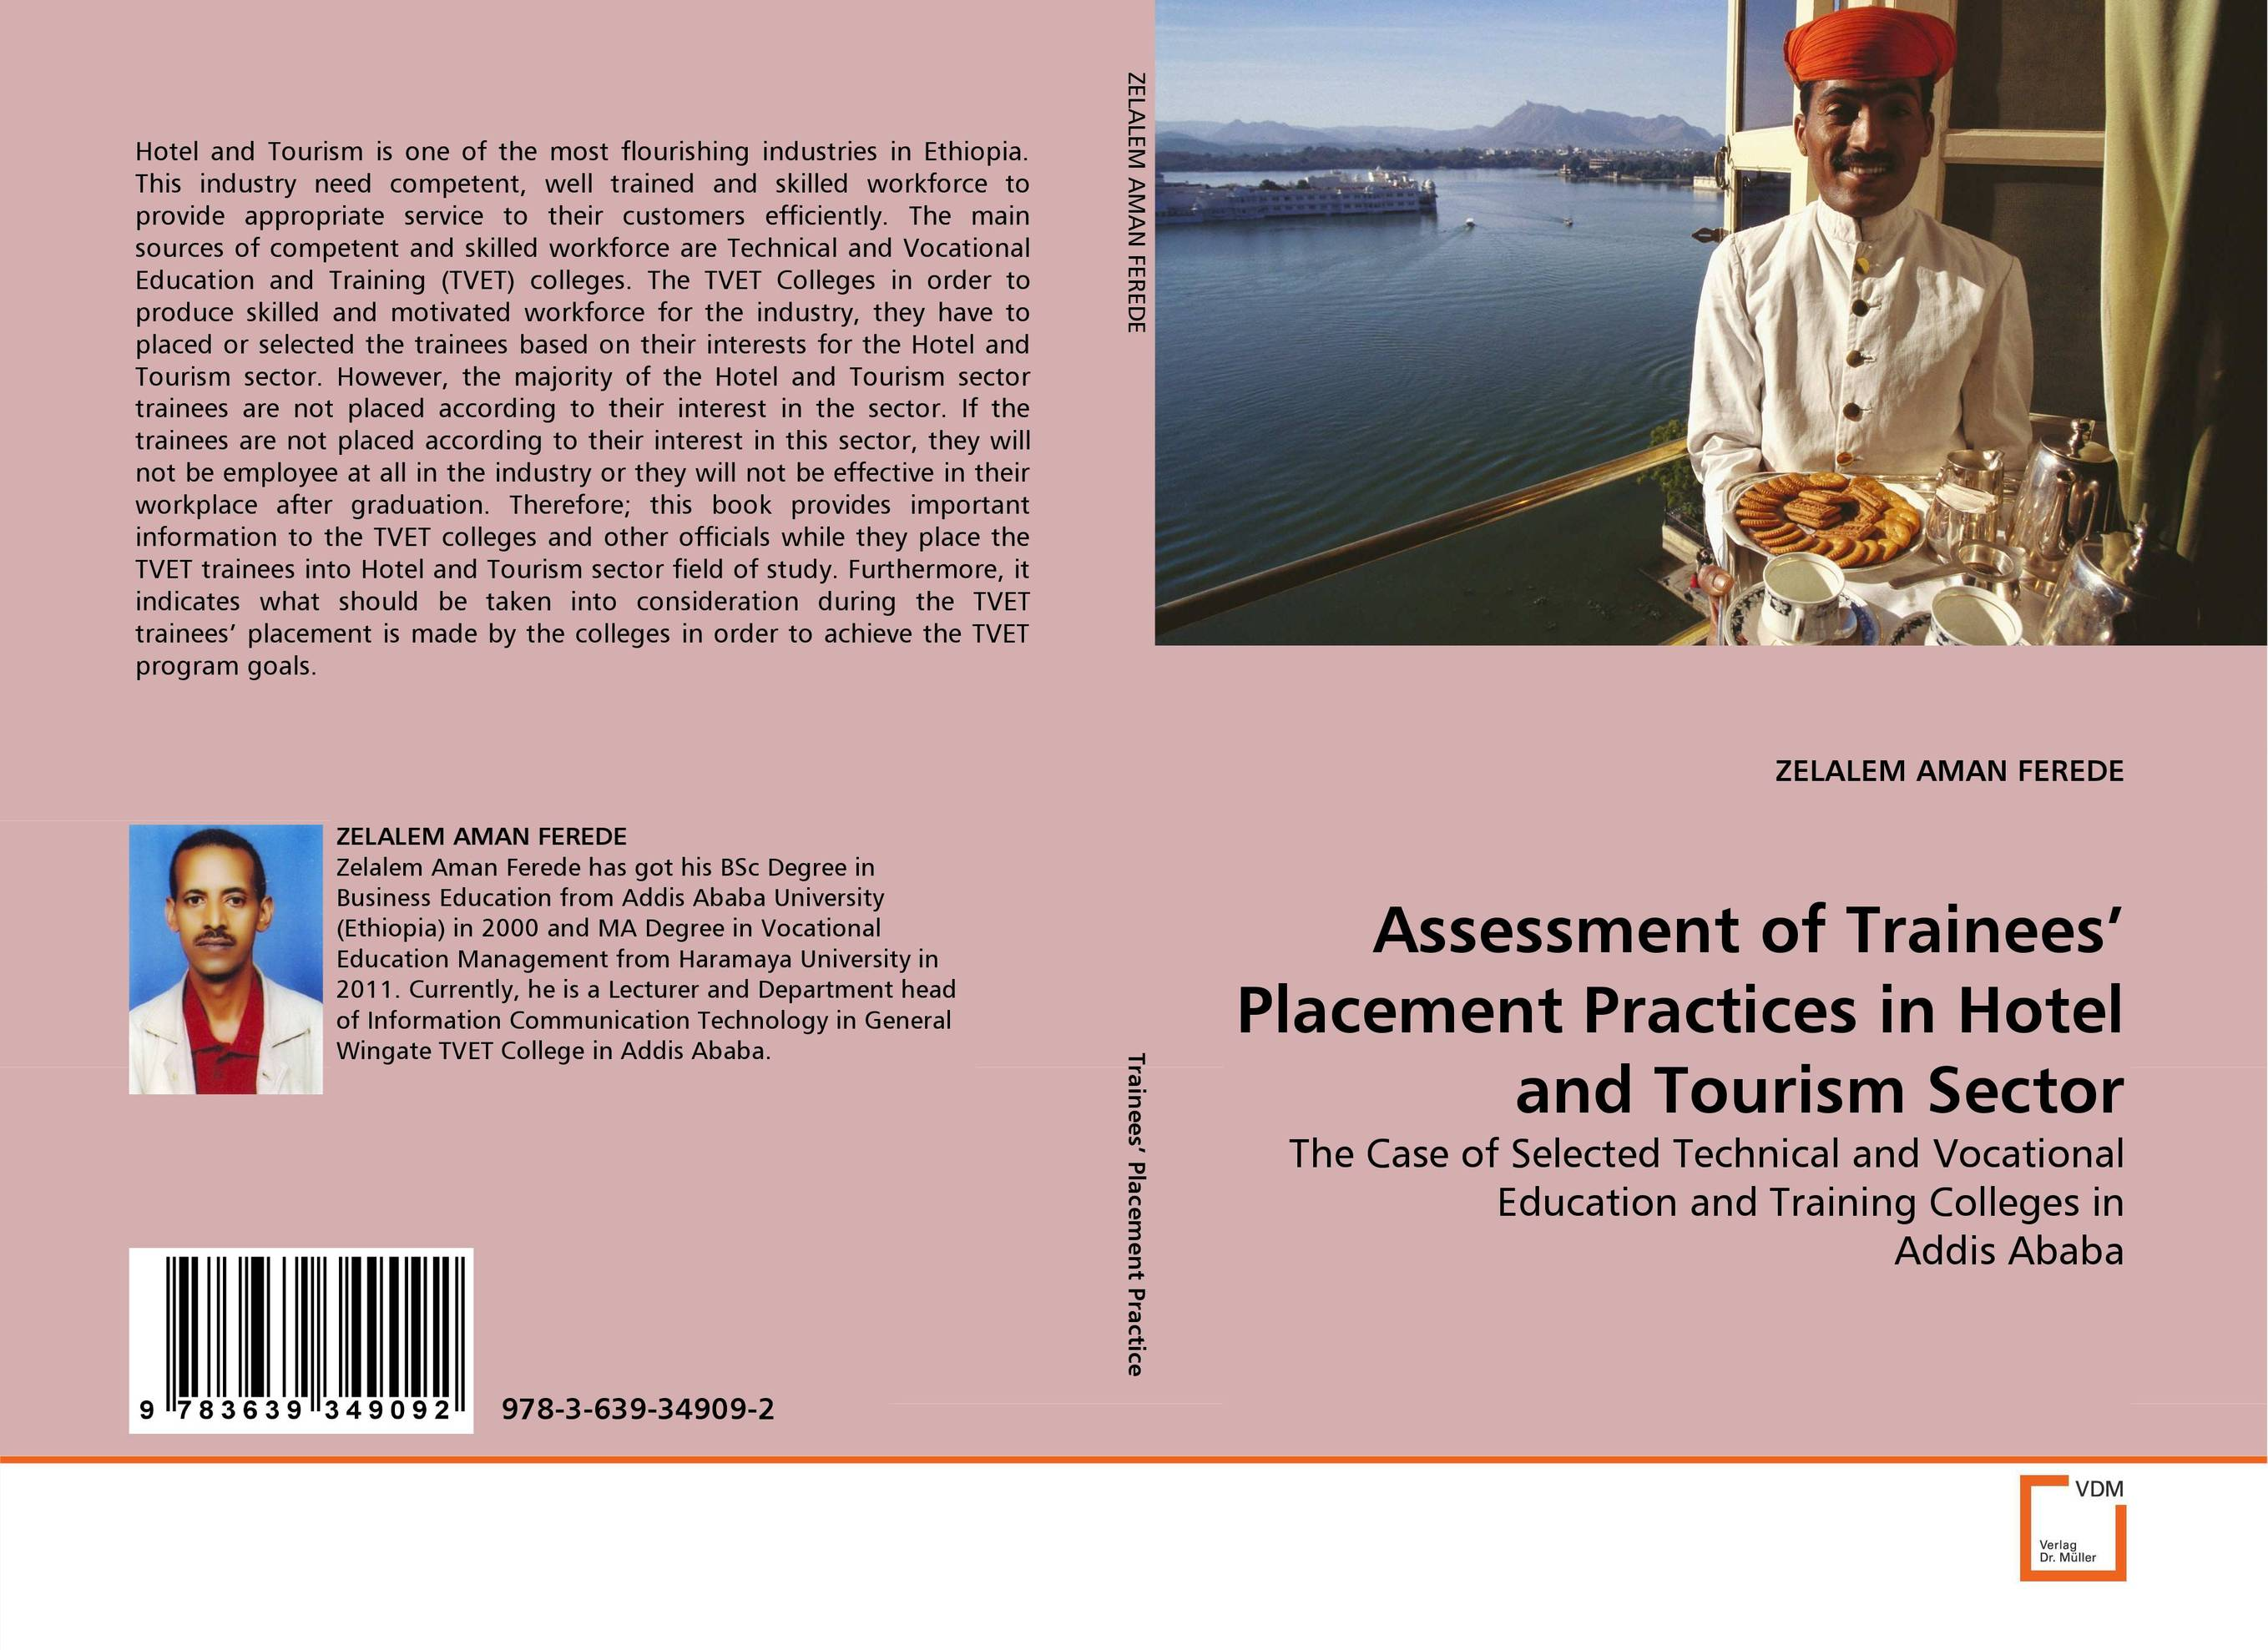 Assessment of Trainees'' Placement Practices in Hotel and Tourism Sector paul r mcgraw legislated hotel levies and tourism governance